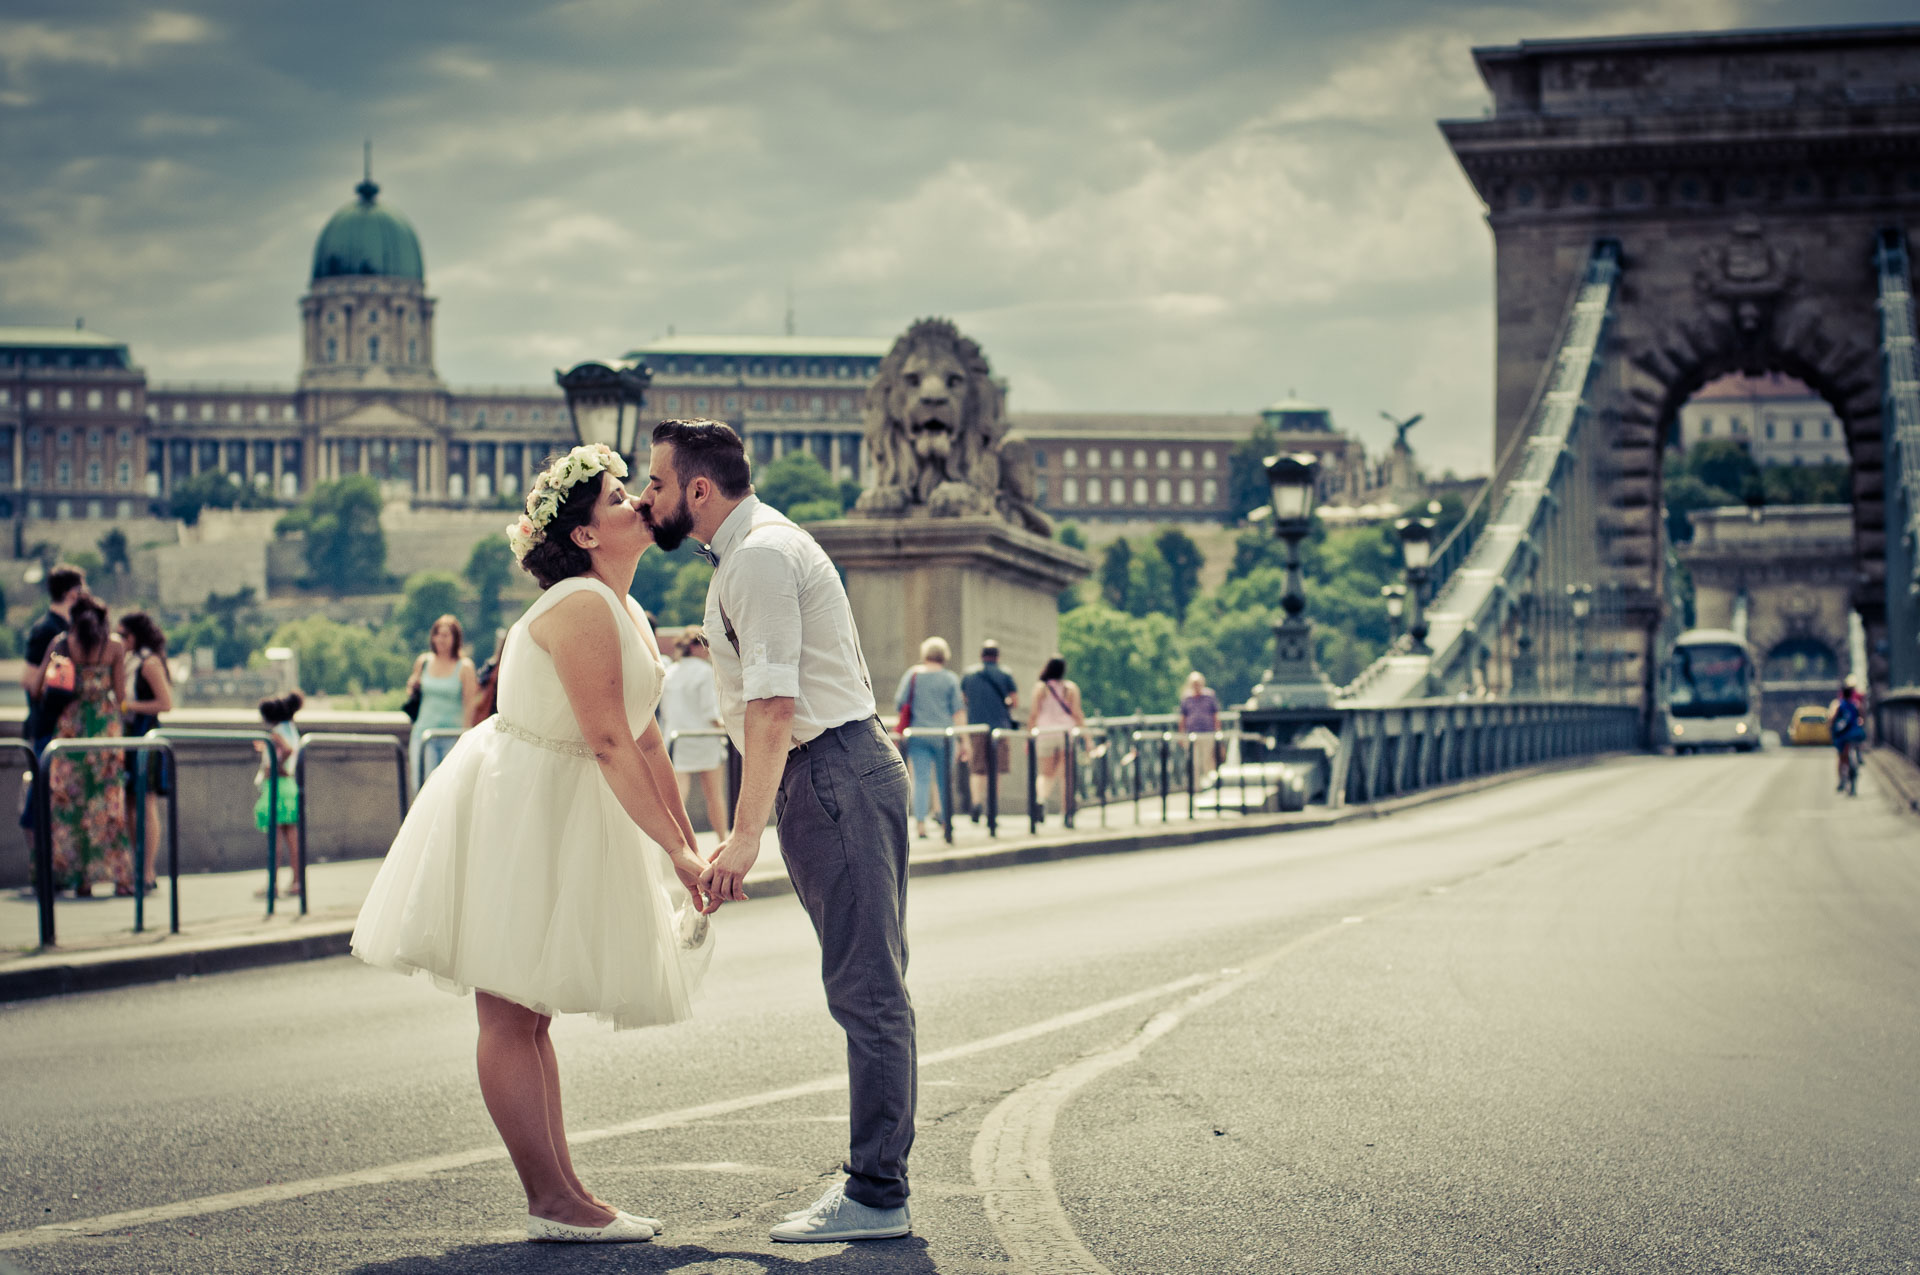 Best elopement and honeymoon place in Europe is Budapest city - super romantic backdrop with Chain bridge